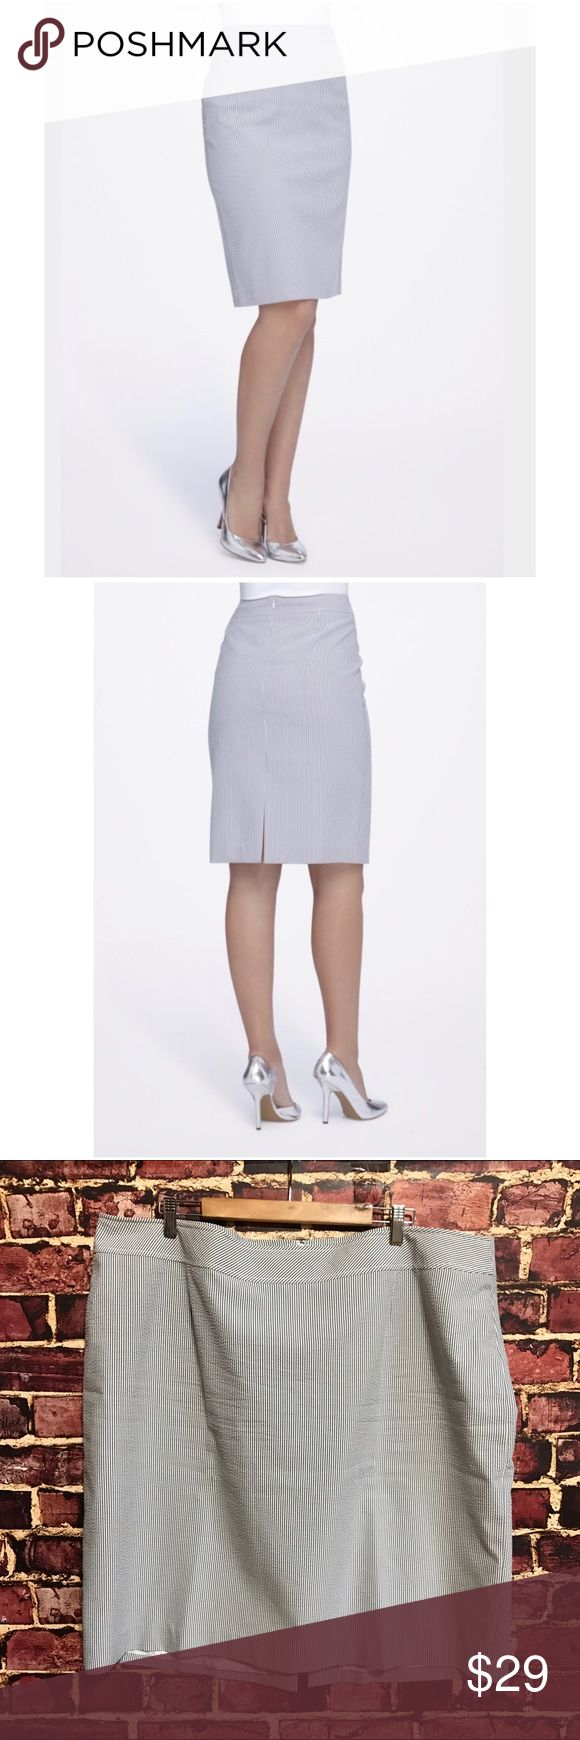 💗Tahari Straight Seersucker Skirt Size 20W. Tahari Arthur S. Levine plus size pencil skirt. Straight seersucker skirt is everyone's favorite warm-weather fabric. Designed with a wide, banded waist and a hint of stretch for a flattering fit. Color: navy & white pinstripes. Hidden back zipper with hook-&-eye enclosure. Polyester, cotton. $69 EUC  💟Fast 1-2 day shipping 💟Reasonable offers accepted 💟Purchase 3 or more items & get a special bundle rate!  💟Smoke-free home Tahari Skirts